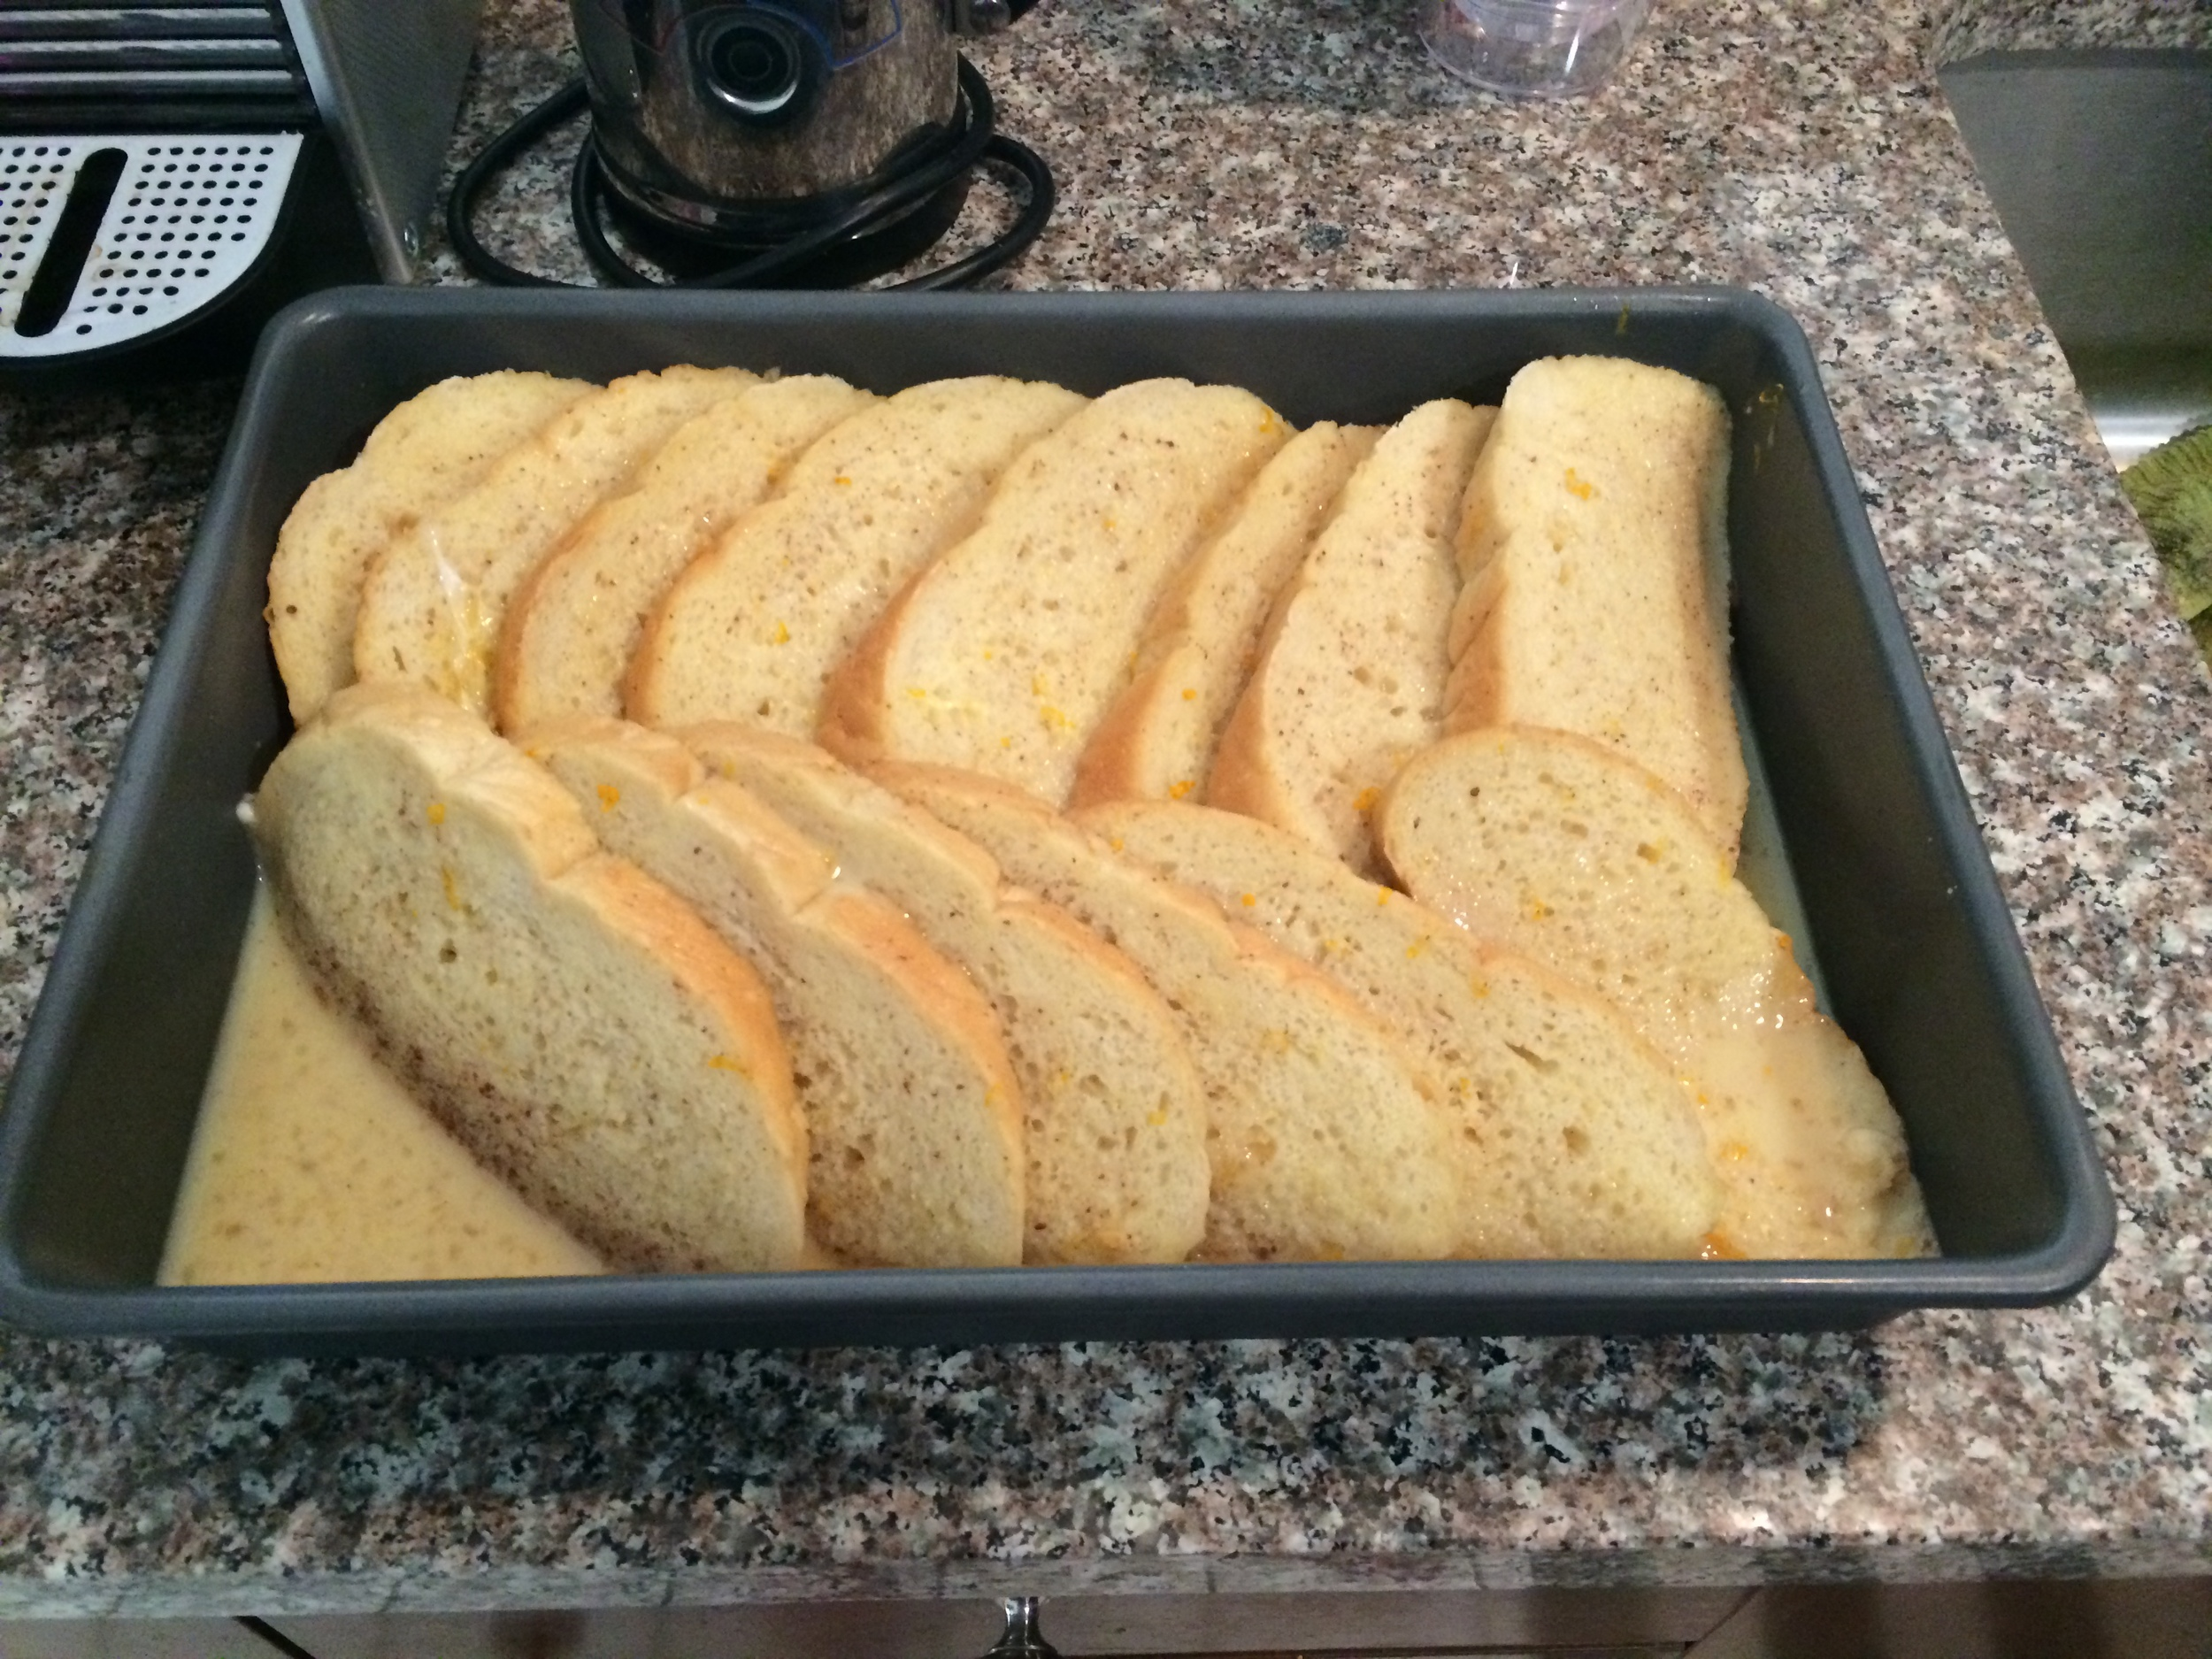 French Toast sits overnight to allow egg mixture to soak into the bread.